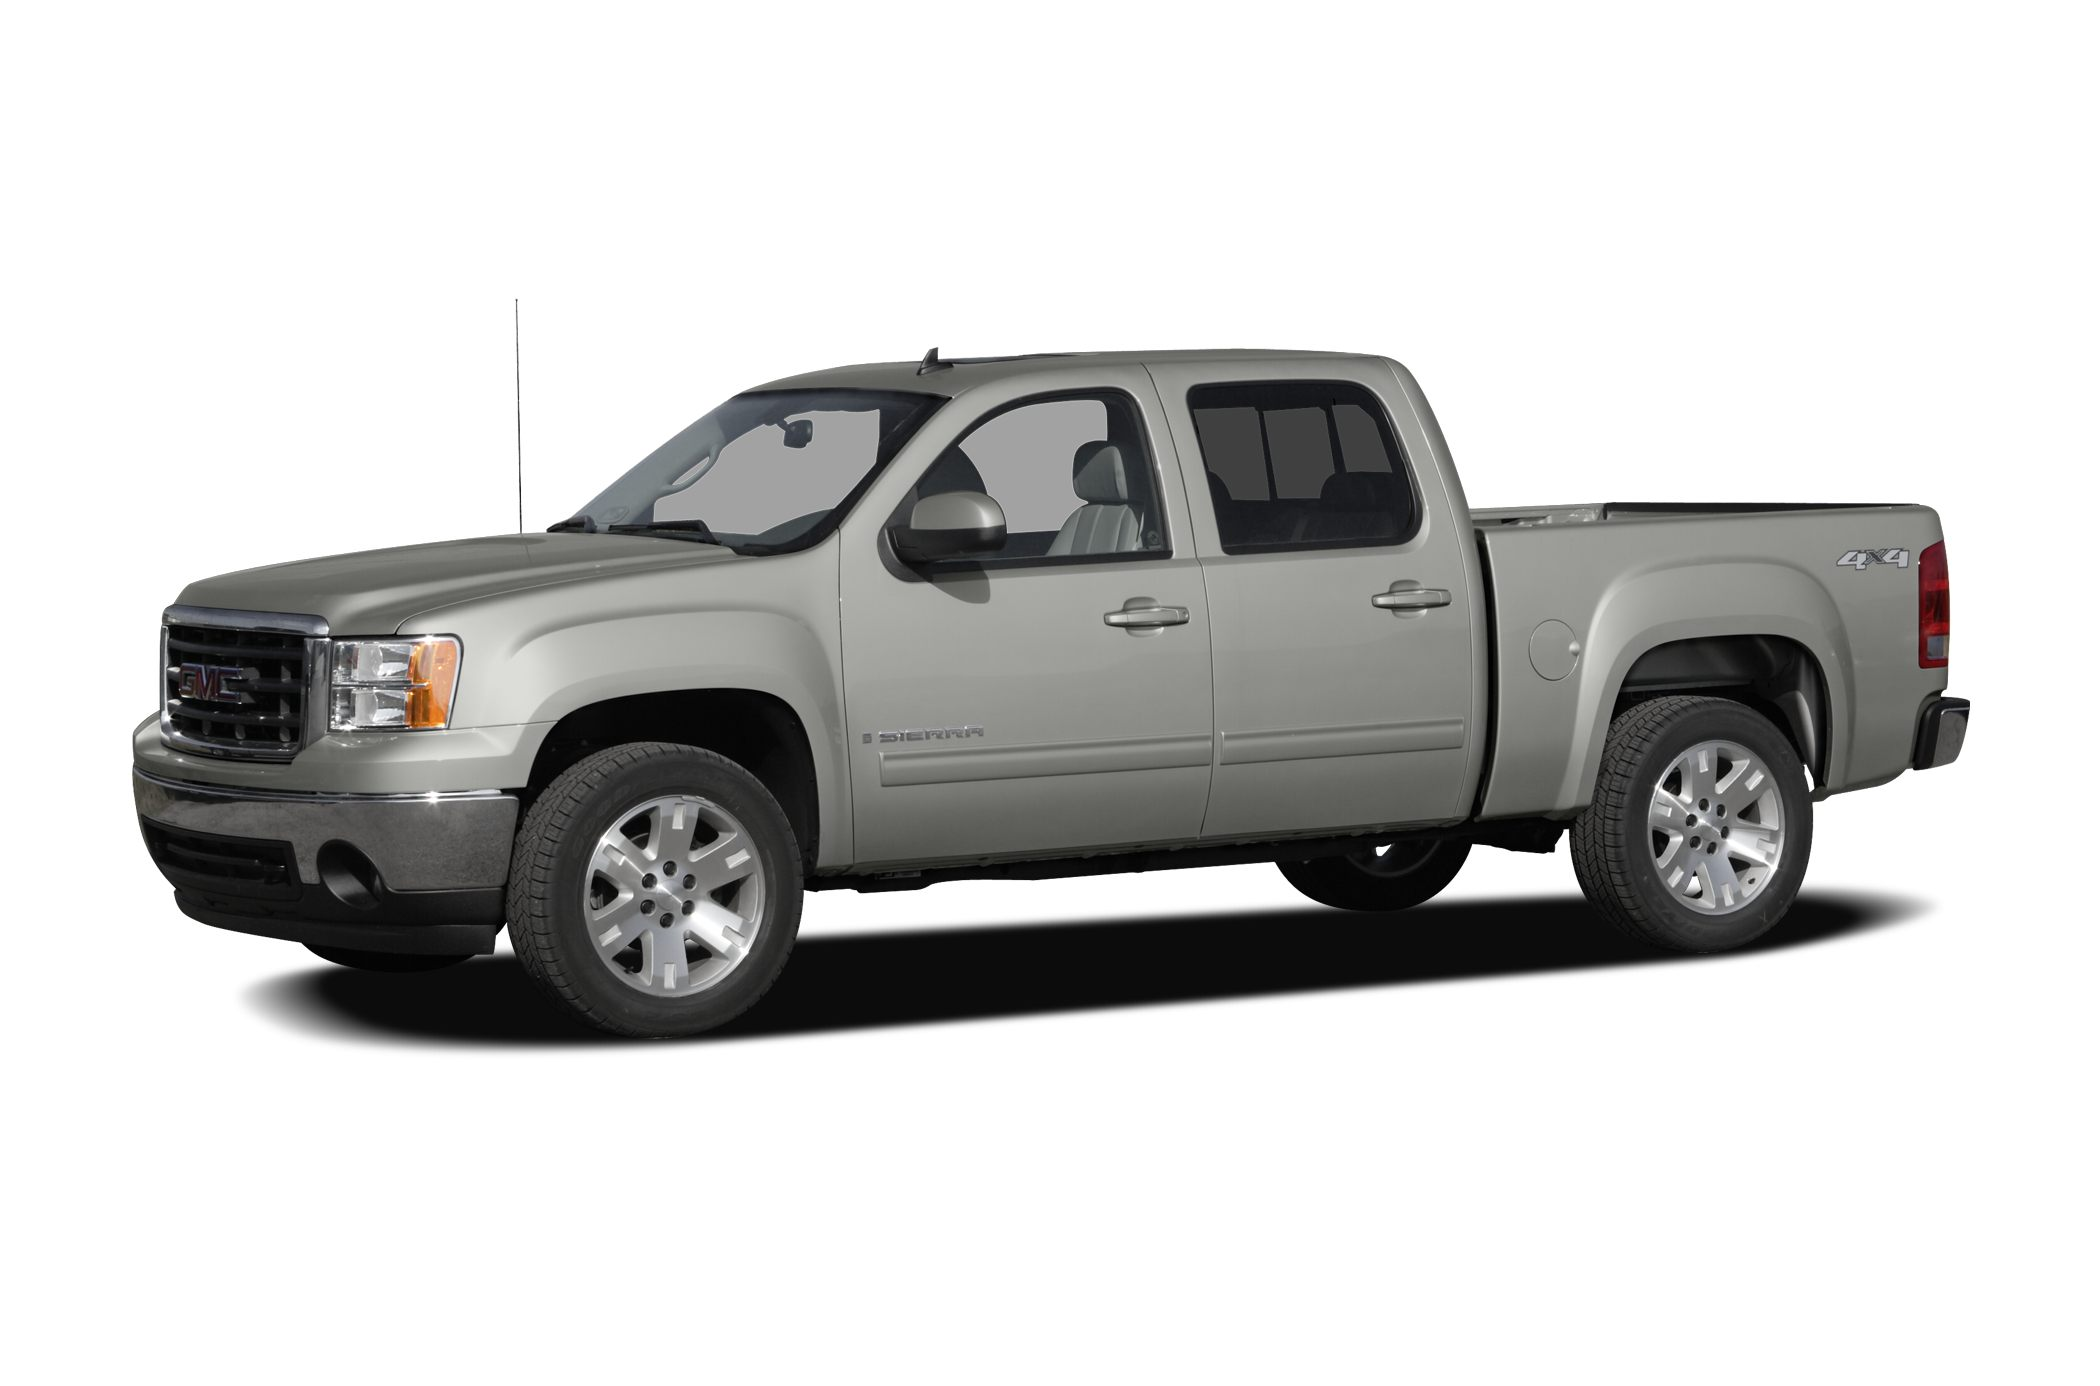 2008 GMC Sierra 1500  DISCLAIMER We are excited to offer this vehicle to you but it is currently